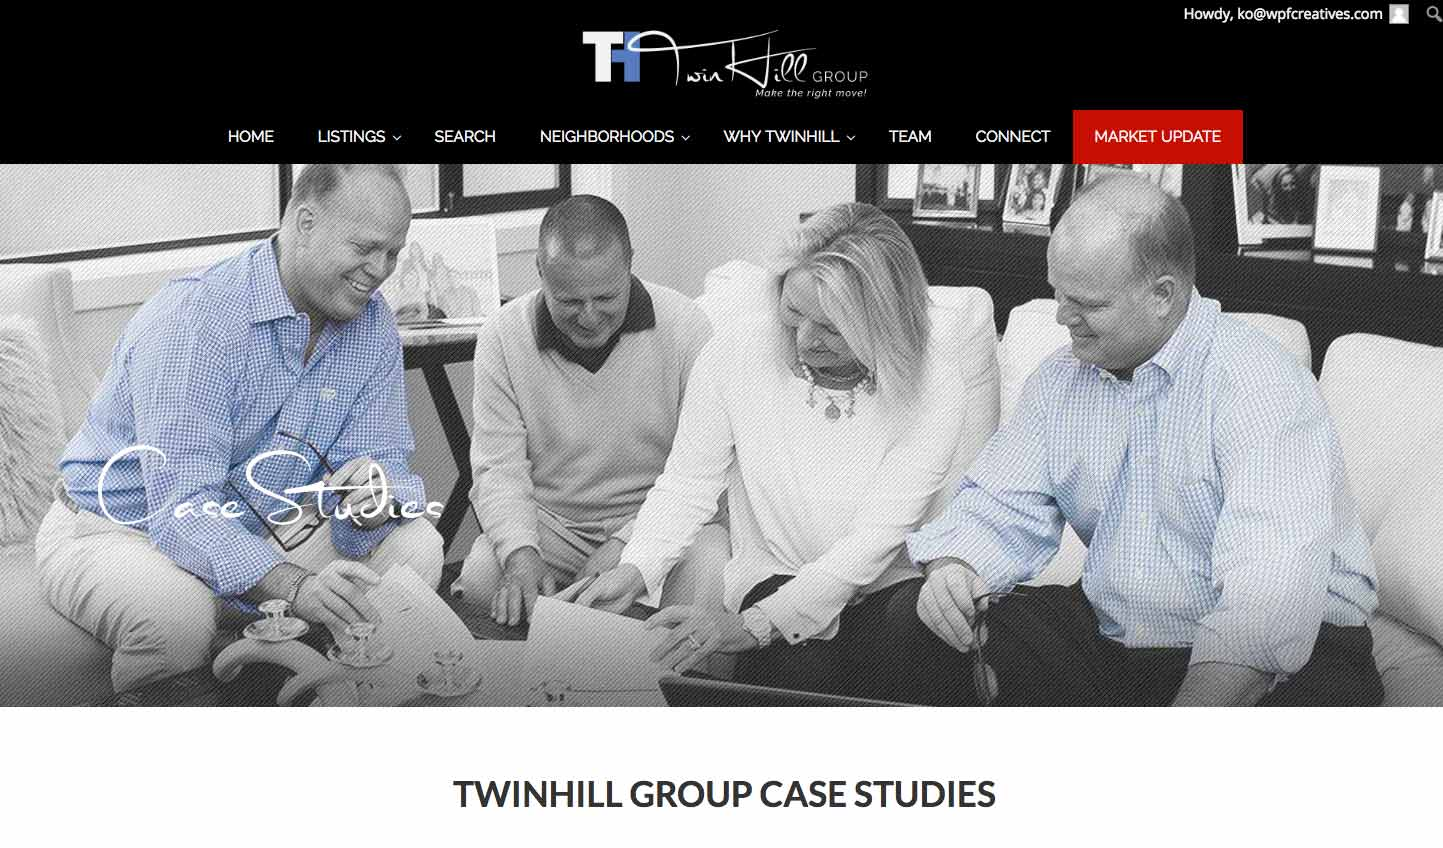 TwinHill Group Case Studies Page